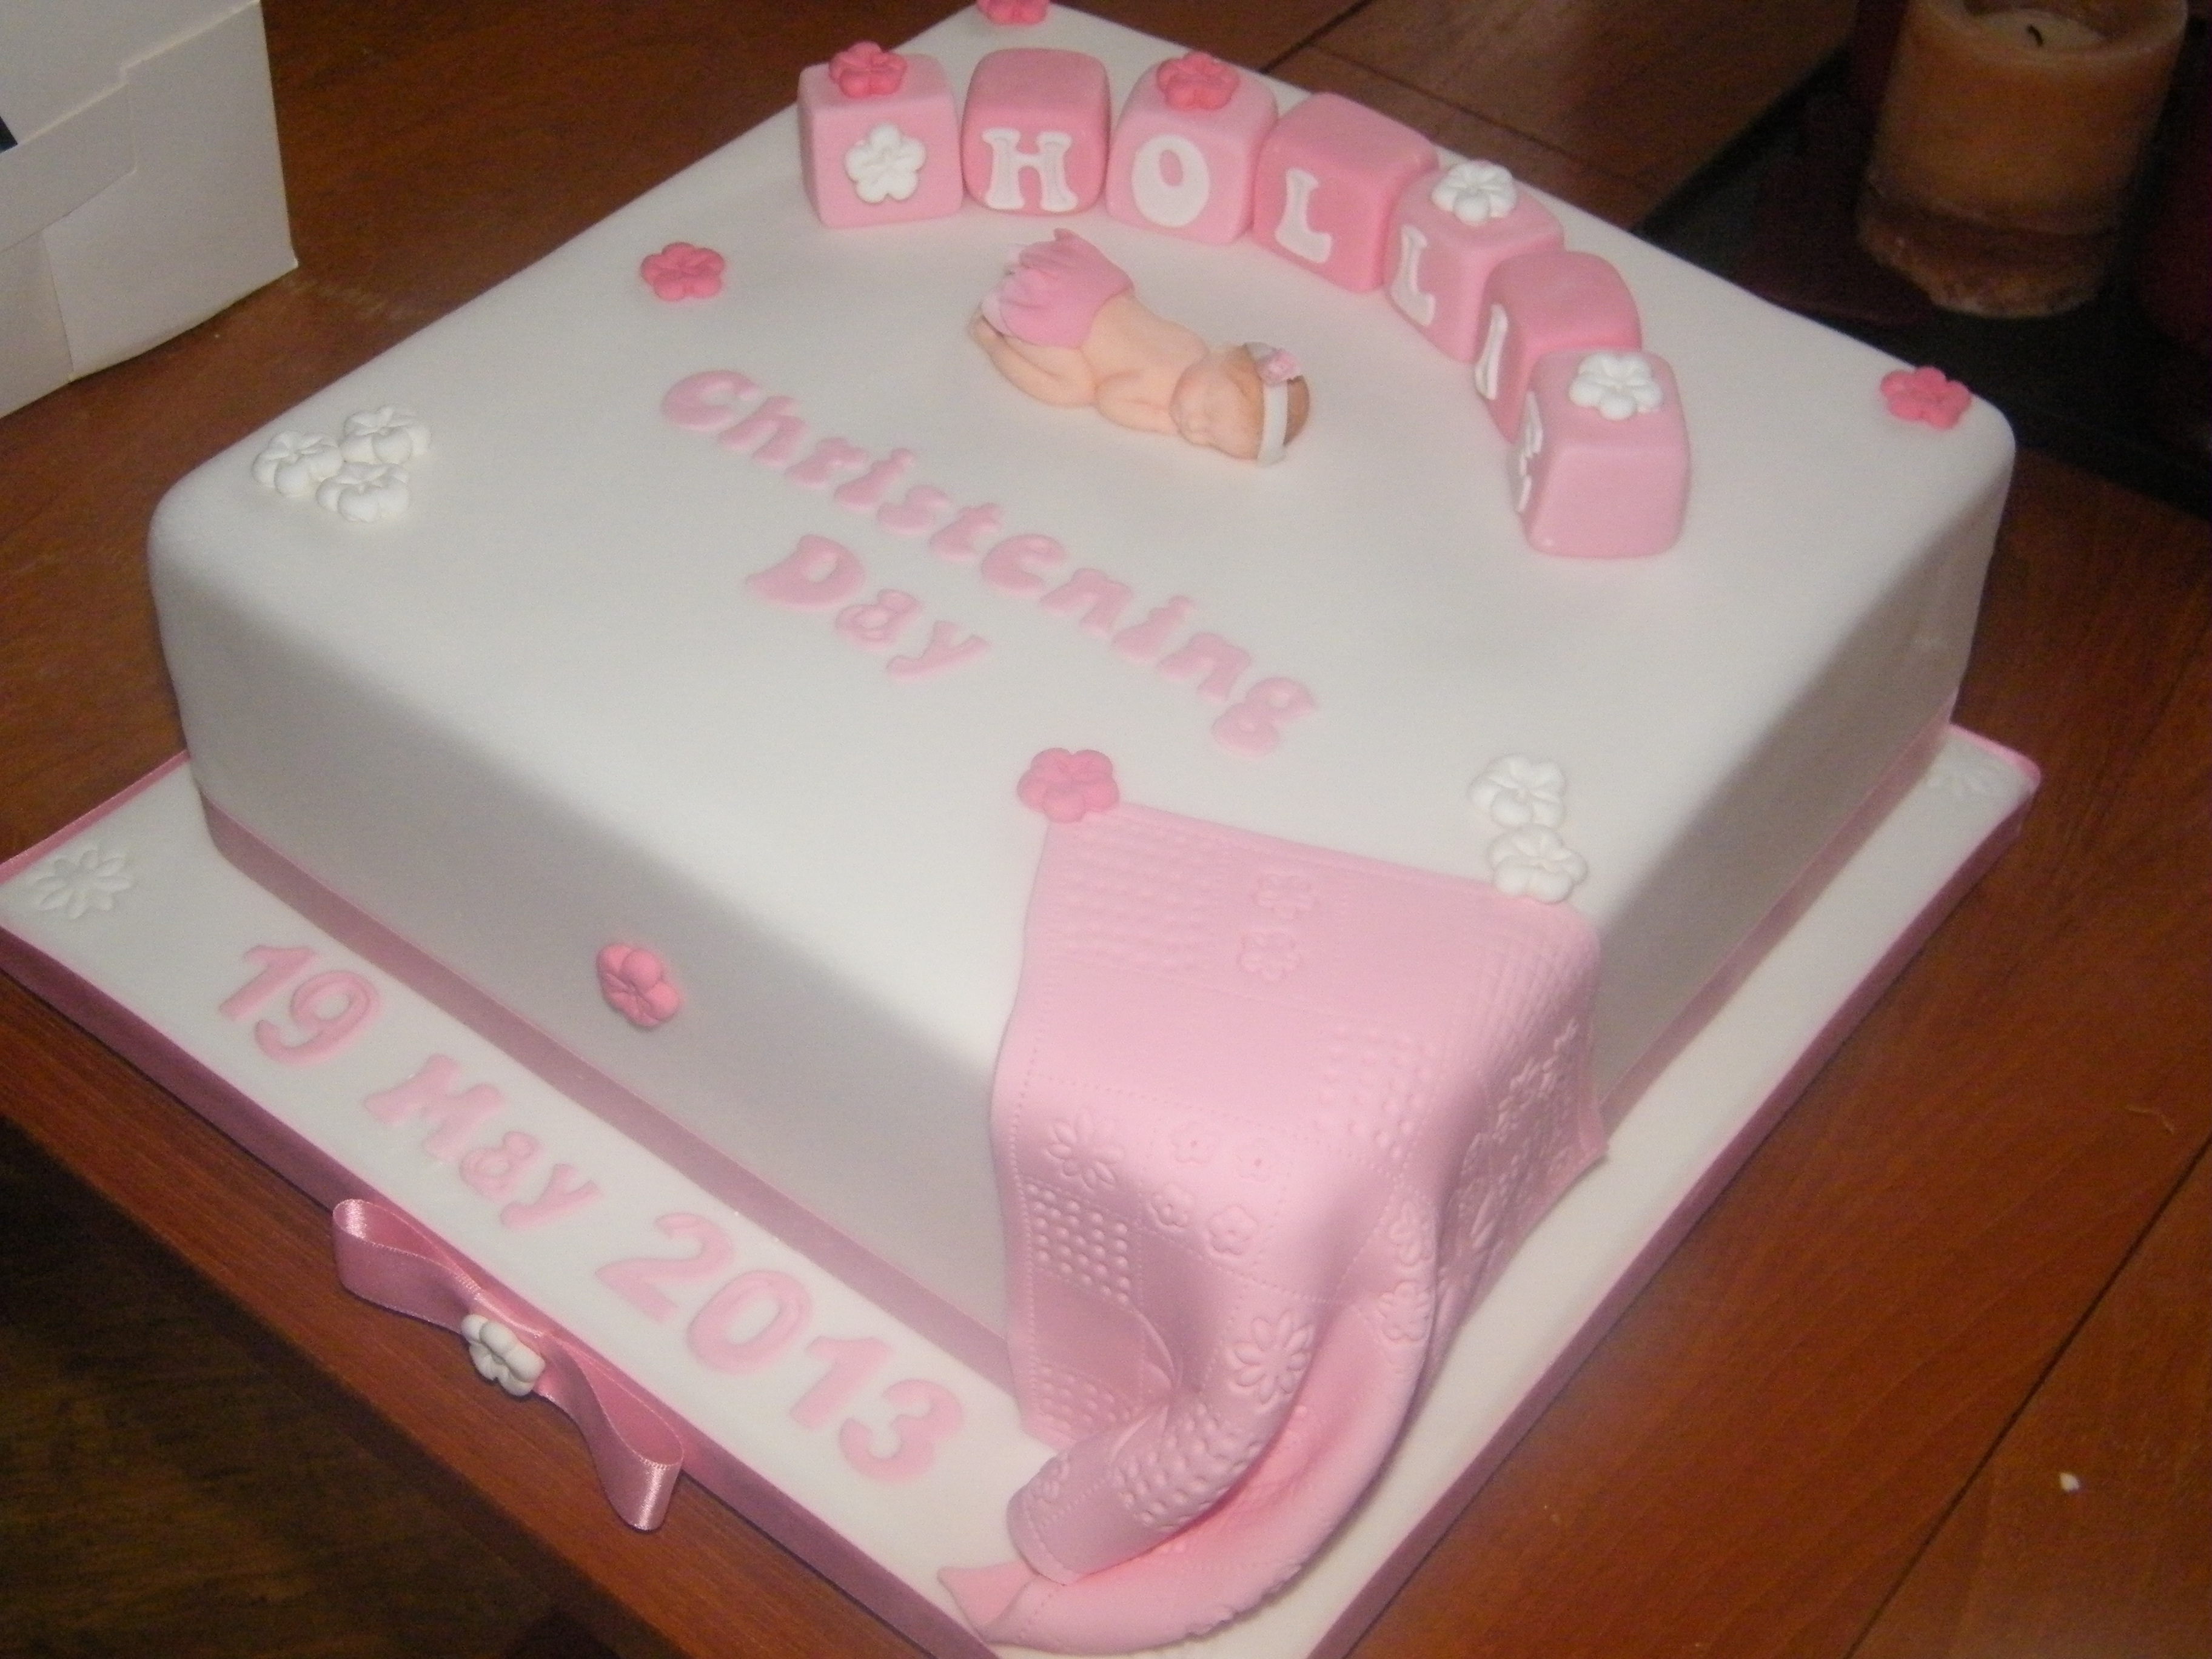 12 Inch Pink And White Christening Cake With Letter Blocks A Baby Blanket